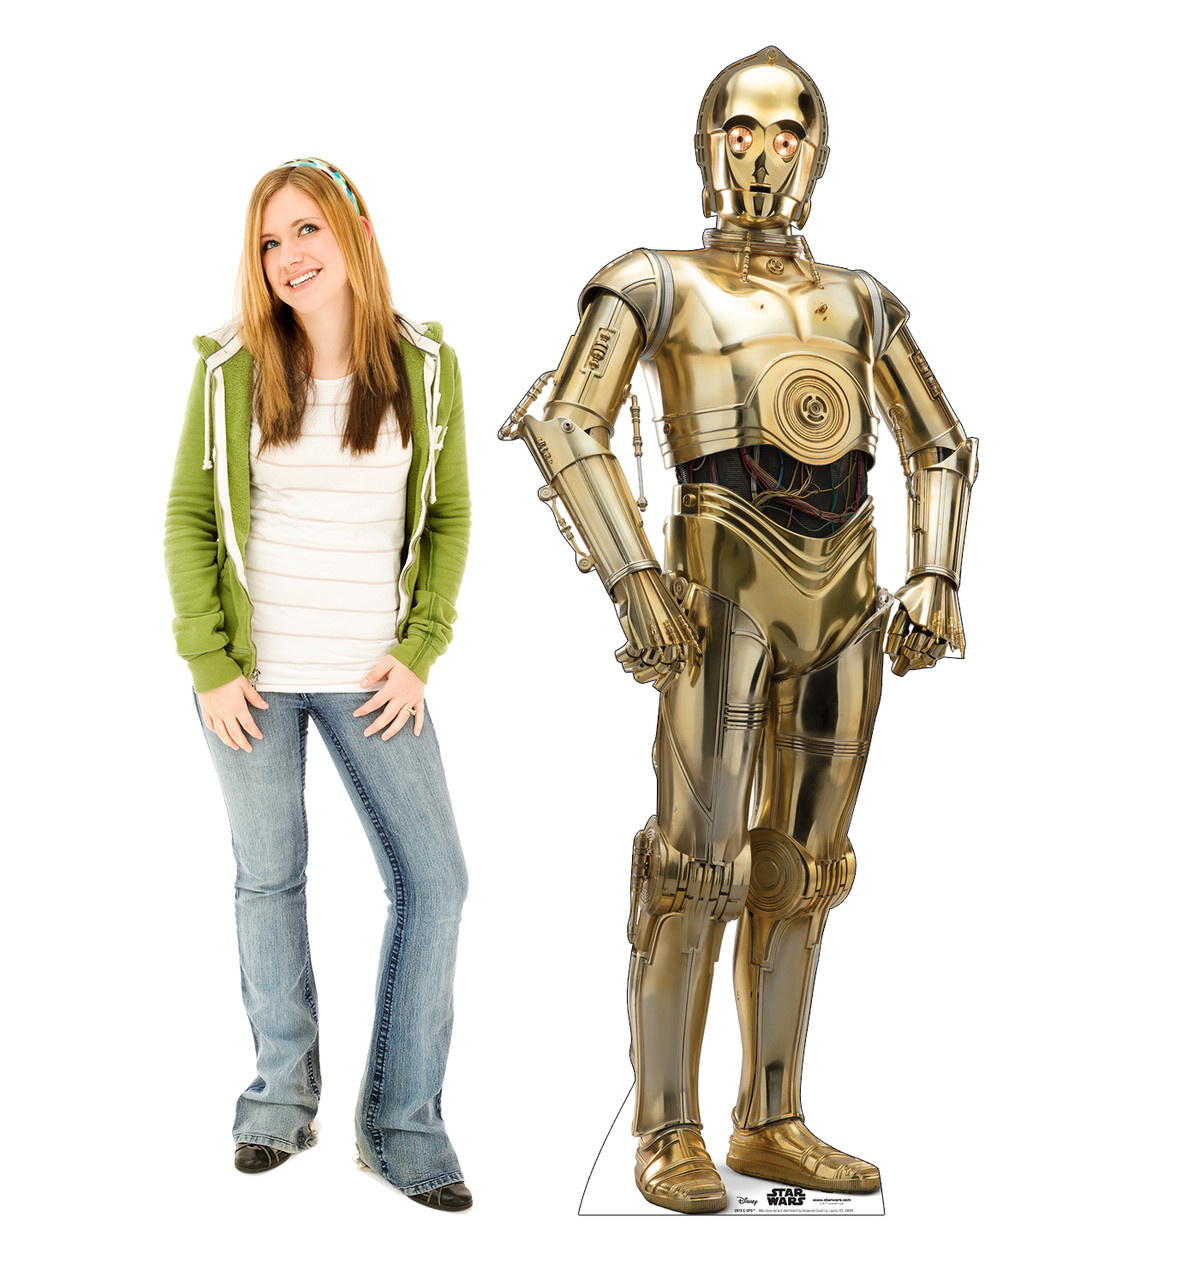 Life-size cardboard standee of C-3PO™ (Star Wars IX) with model.